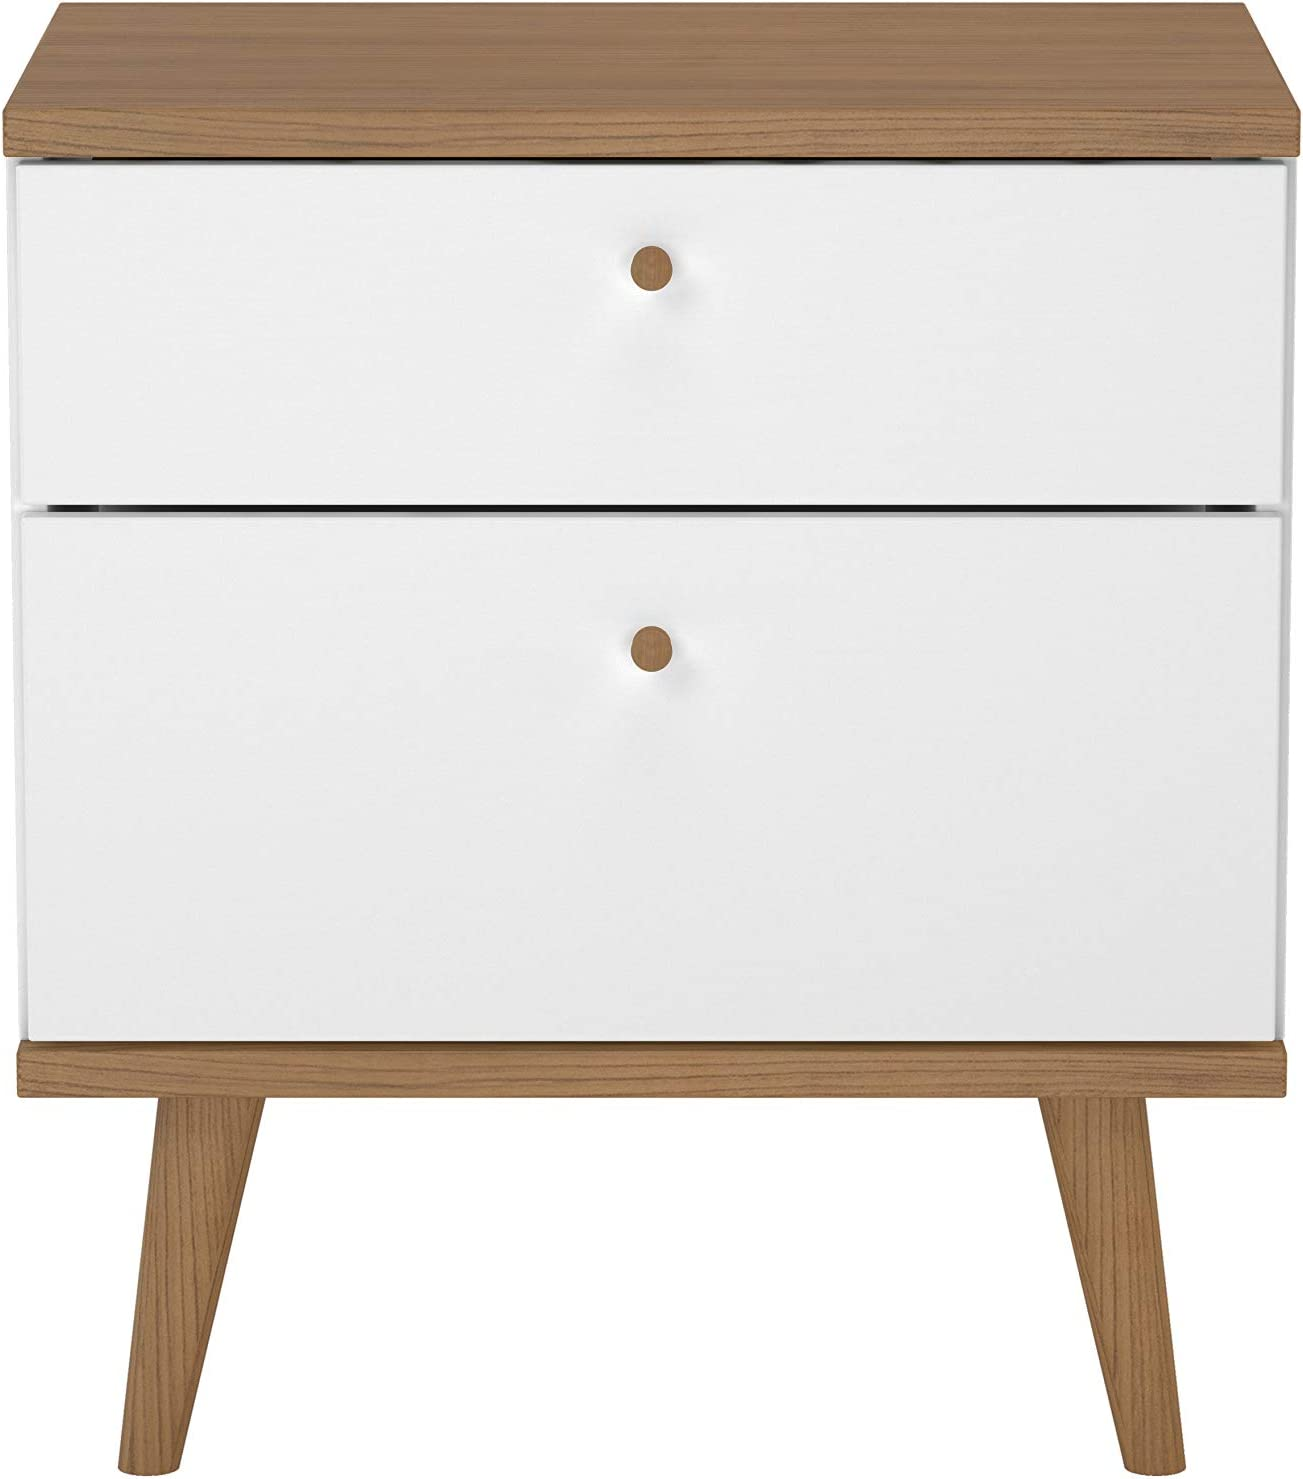 2-Drawer Wood Nightstand White//Brown Nathan James 32702 Harper Mid-Century Side Table